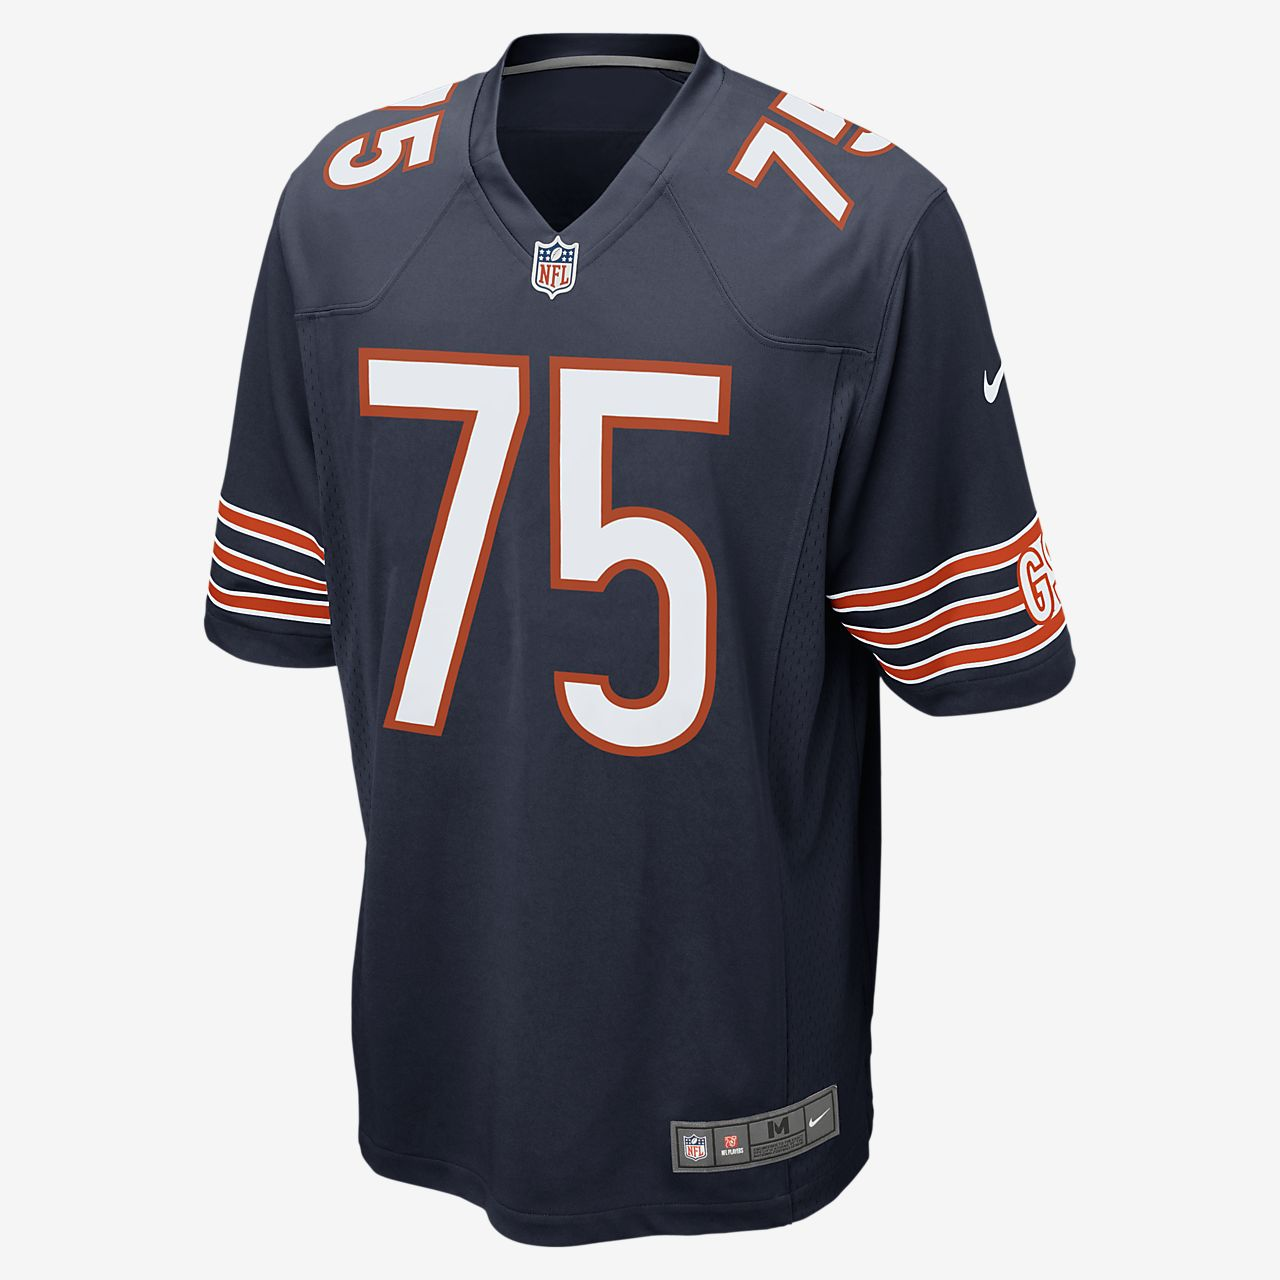 super popular 2c7bf 9a3ef NFL Chicago Bears (Kyle Long) Men's American Football Home Game Jersey